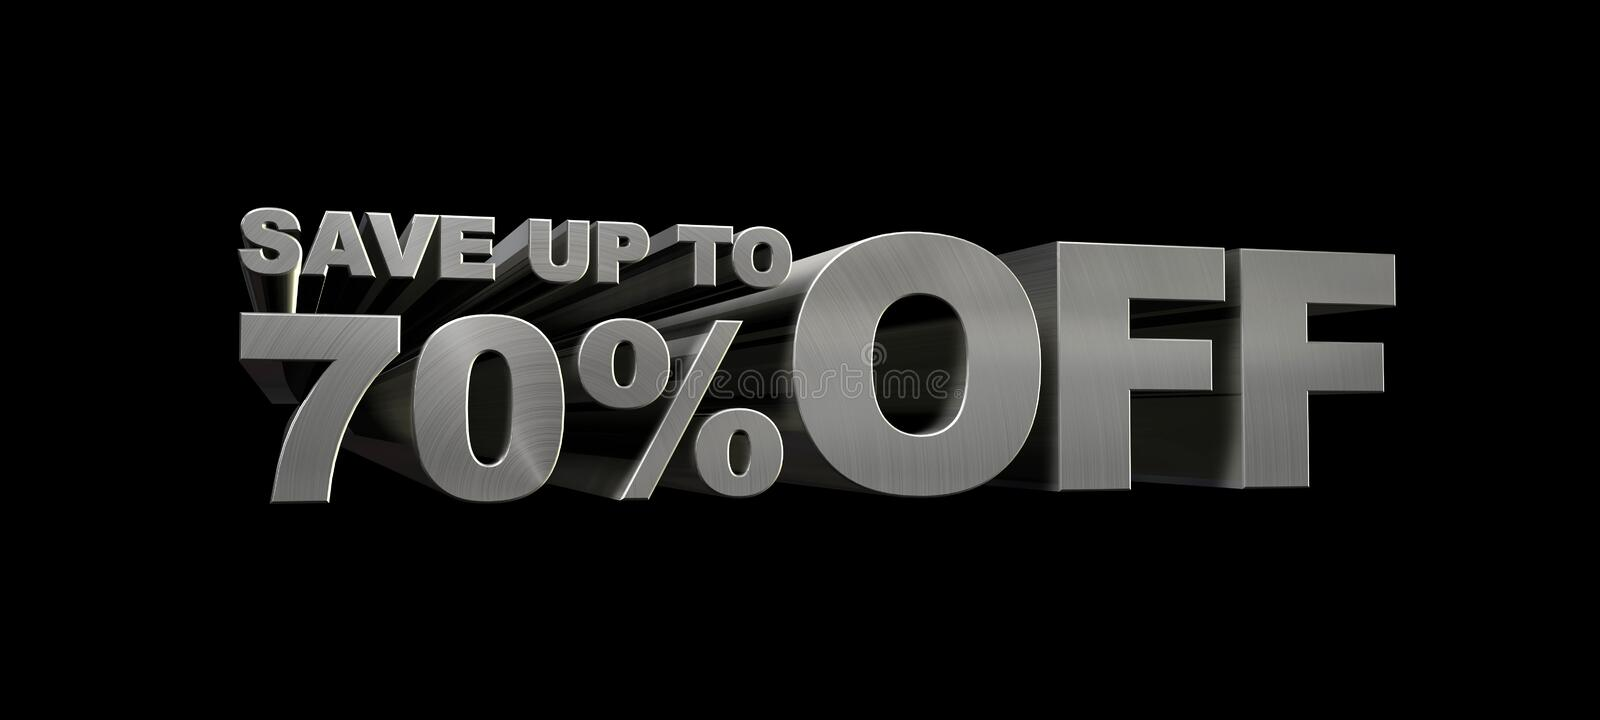 SAVE UP TO 70% OFF. 3D Graphic of large metallic characters that read SAVE UP TO 70% OFF Intended for retail sales graphics